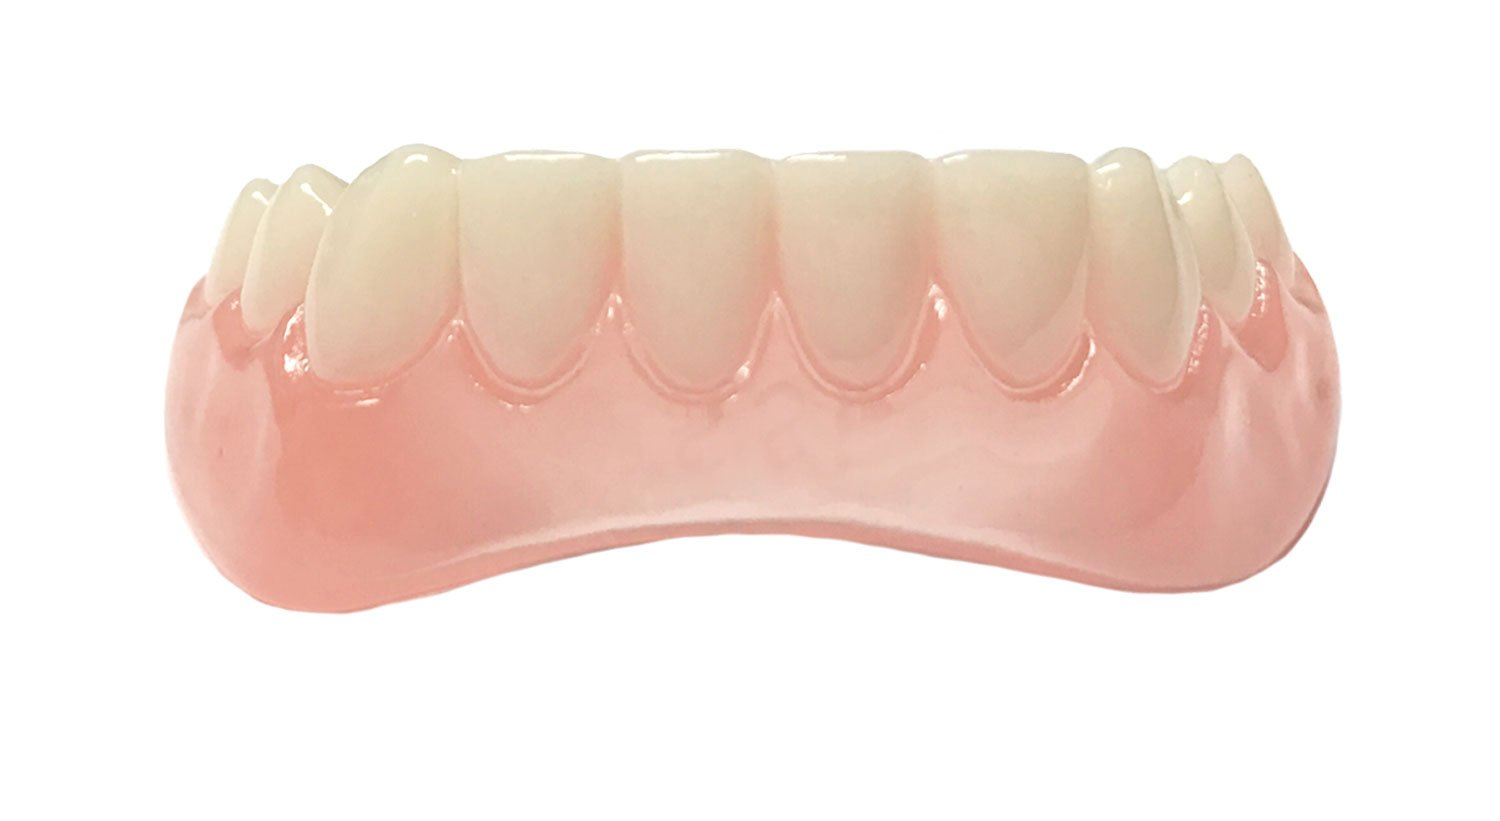 Professional Cosmetic Lower Teeth - New from Instant Smile! Hand crafted detail, custom fit at home!